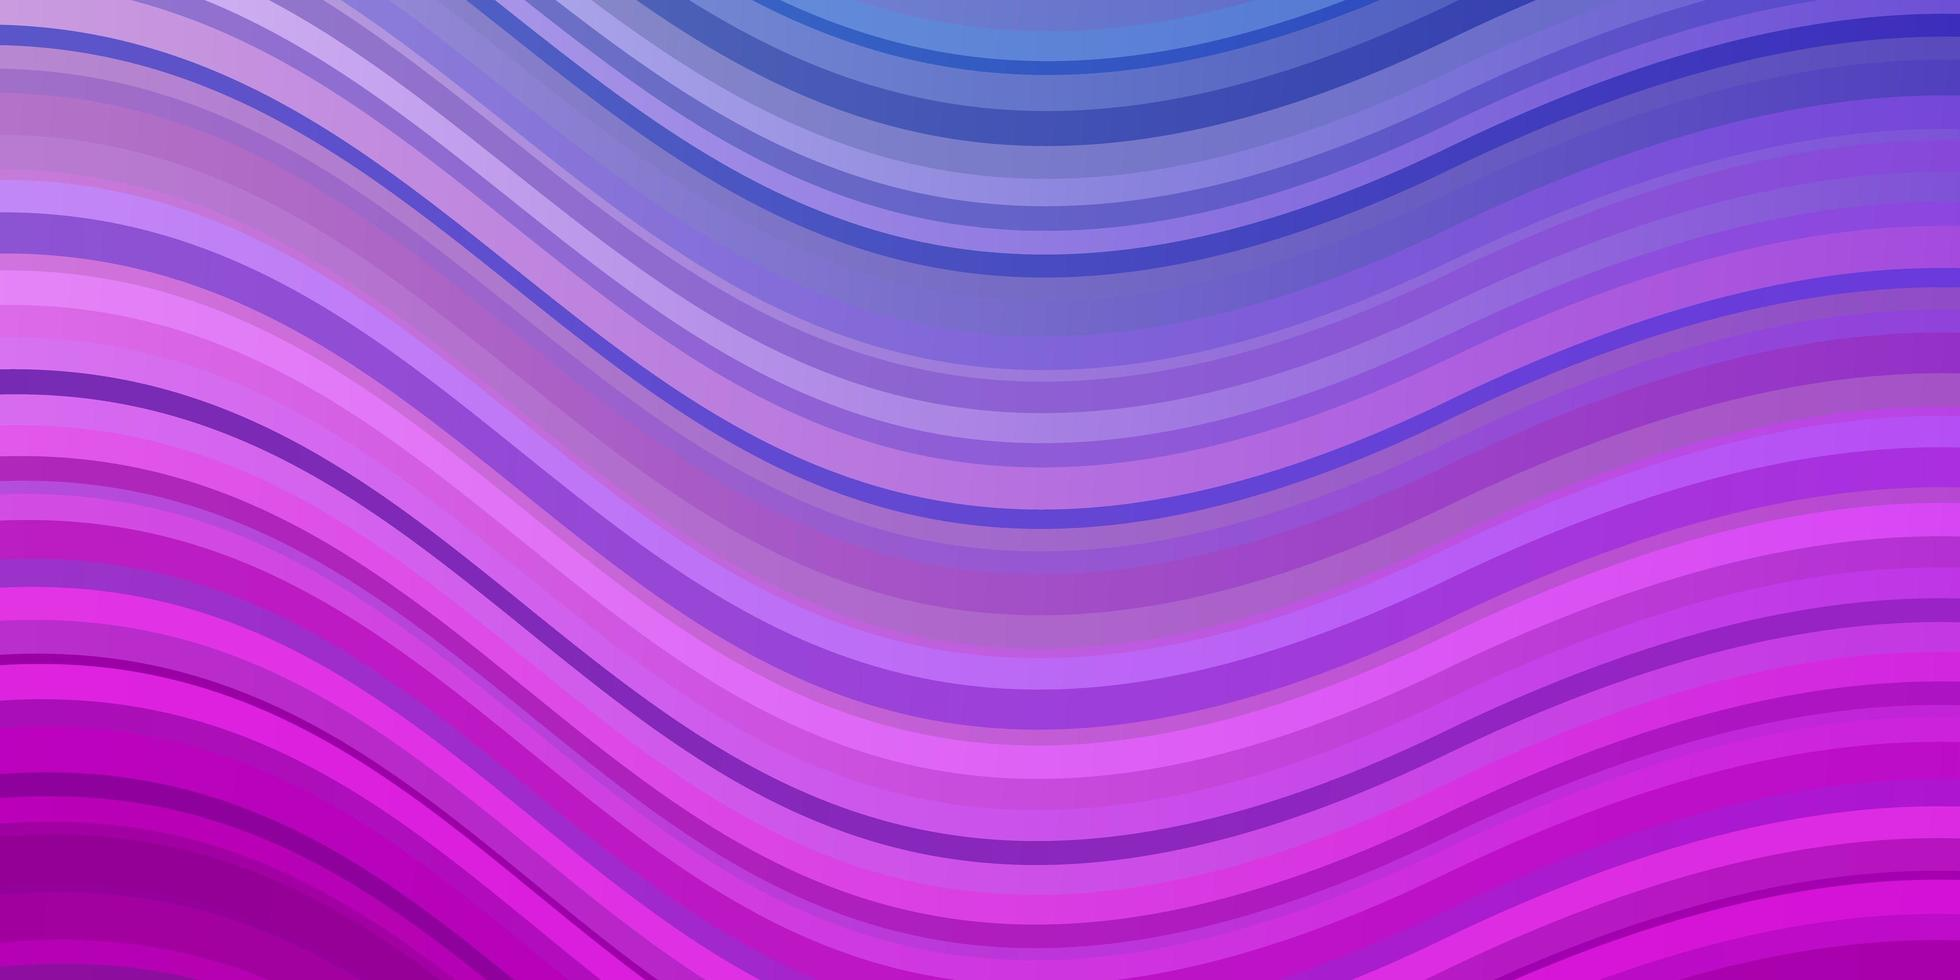 Light Pink, Blue vector background with curved lines.